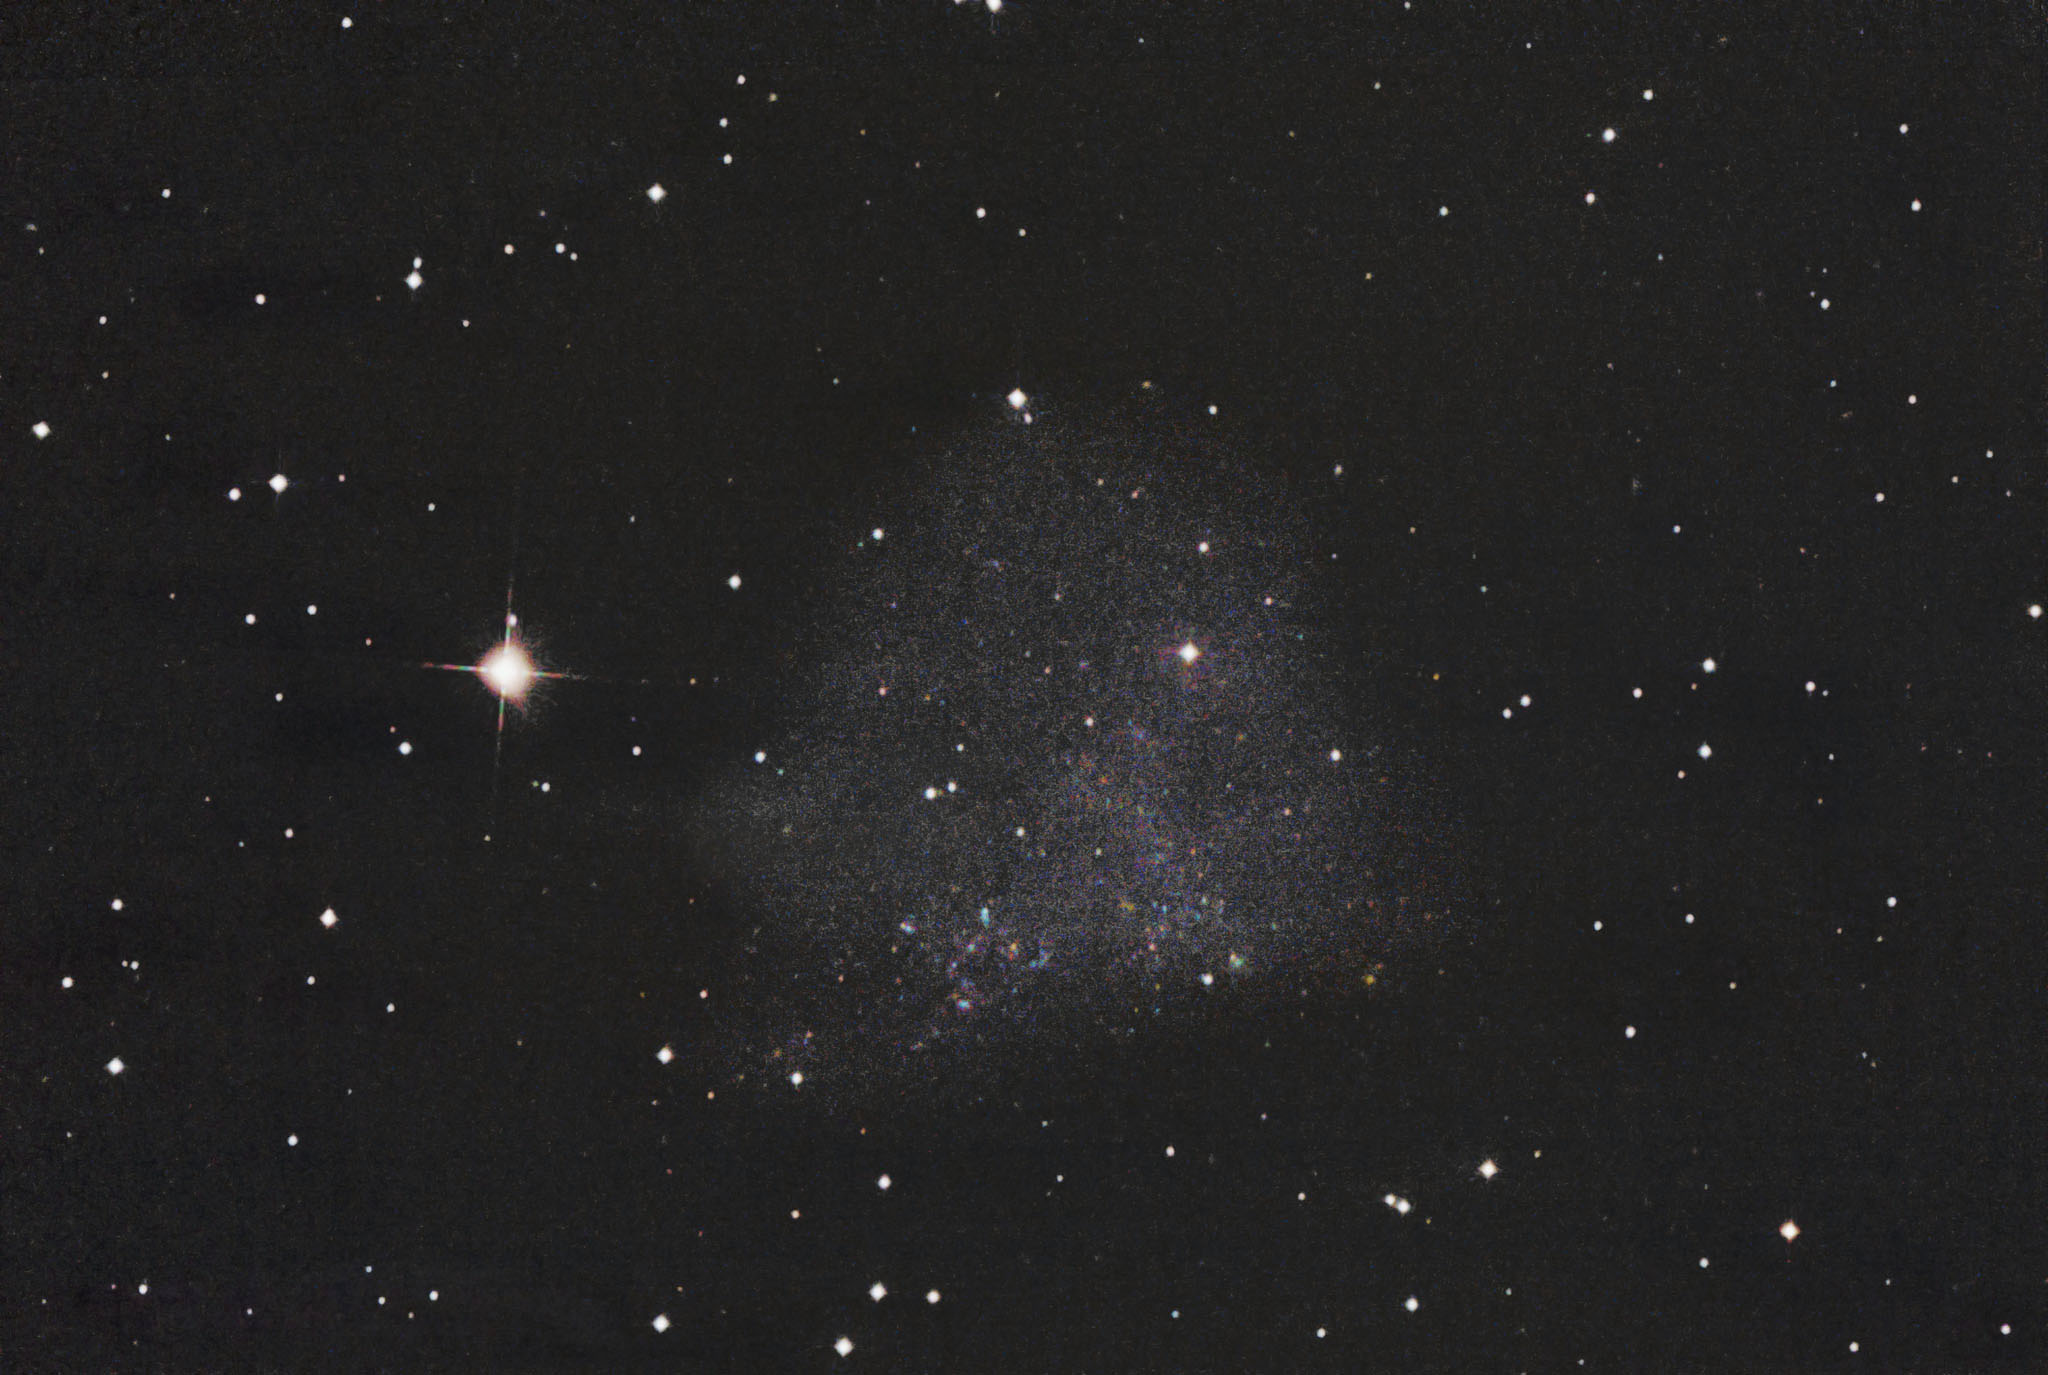 IC1613  irregular dwarf galaxy in the constellation Cetus 不規則矮小銀河 くじら座